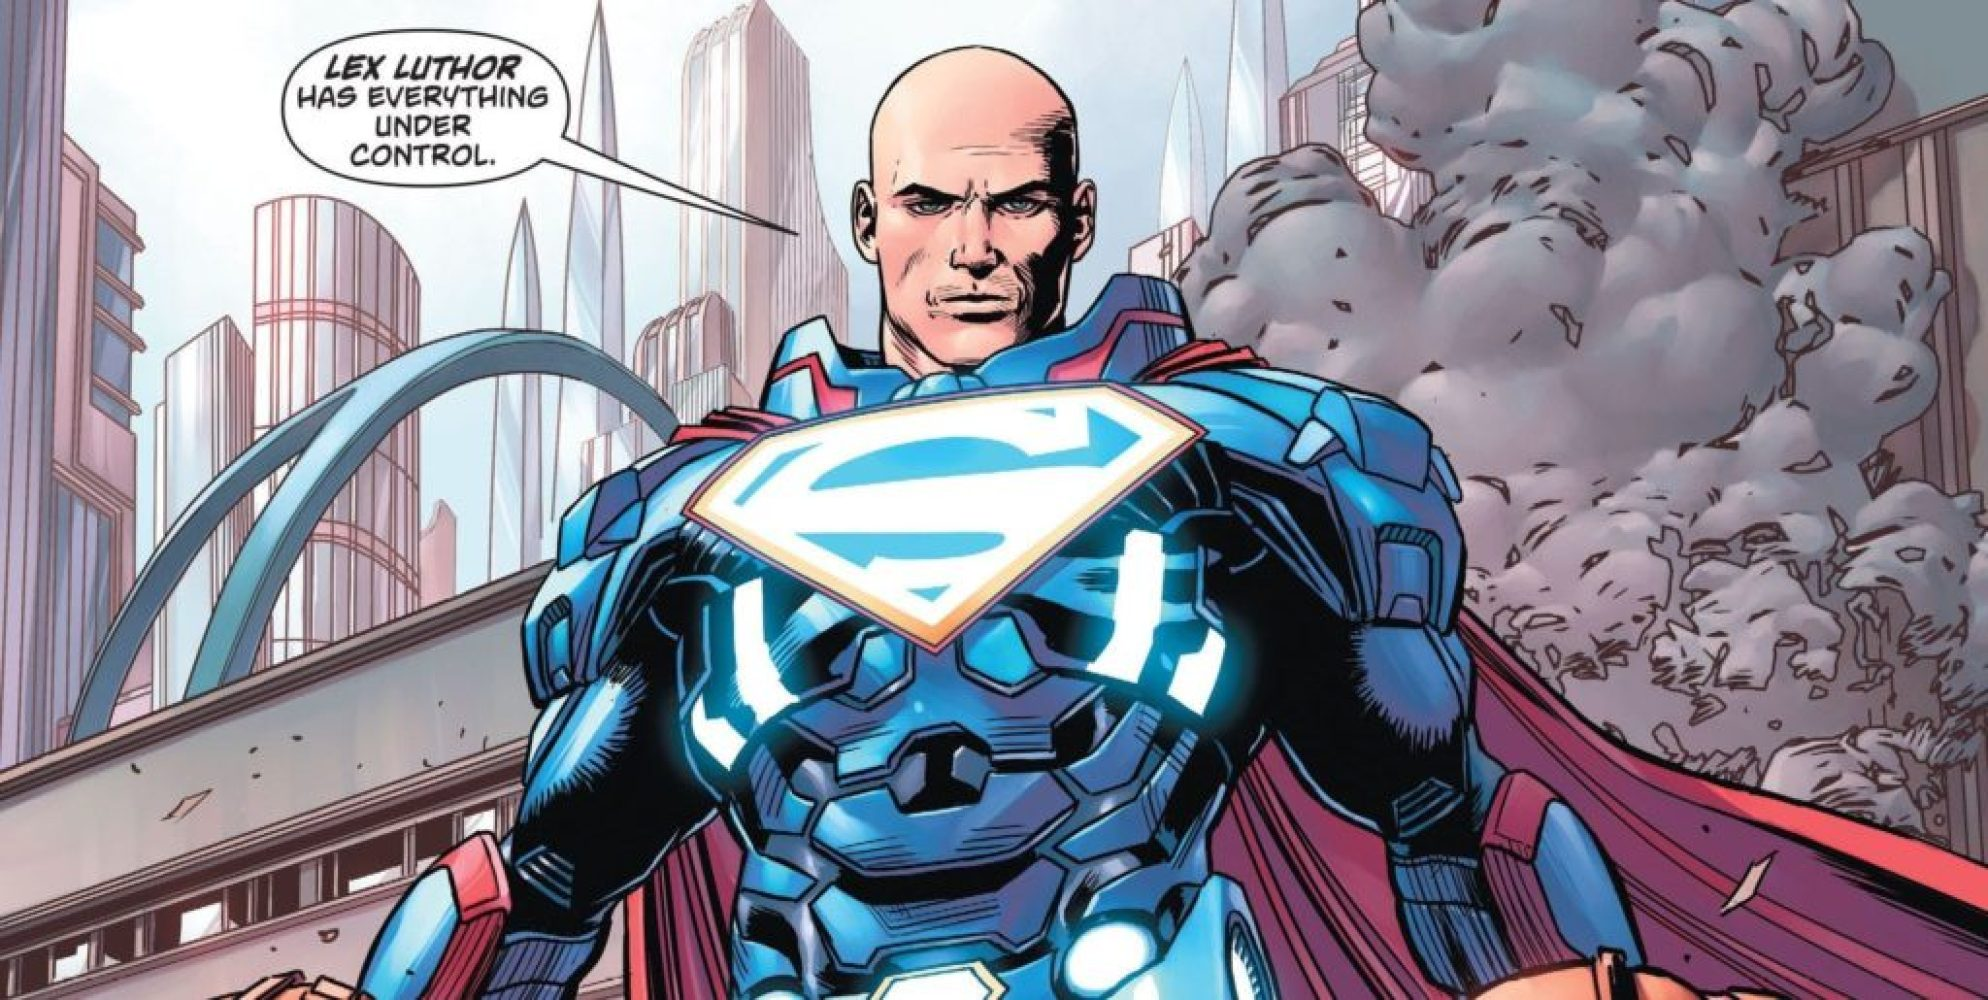 DC Rebirth's Lex Luthor is a hero